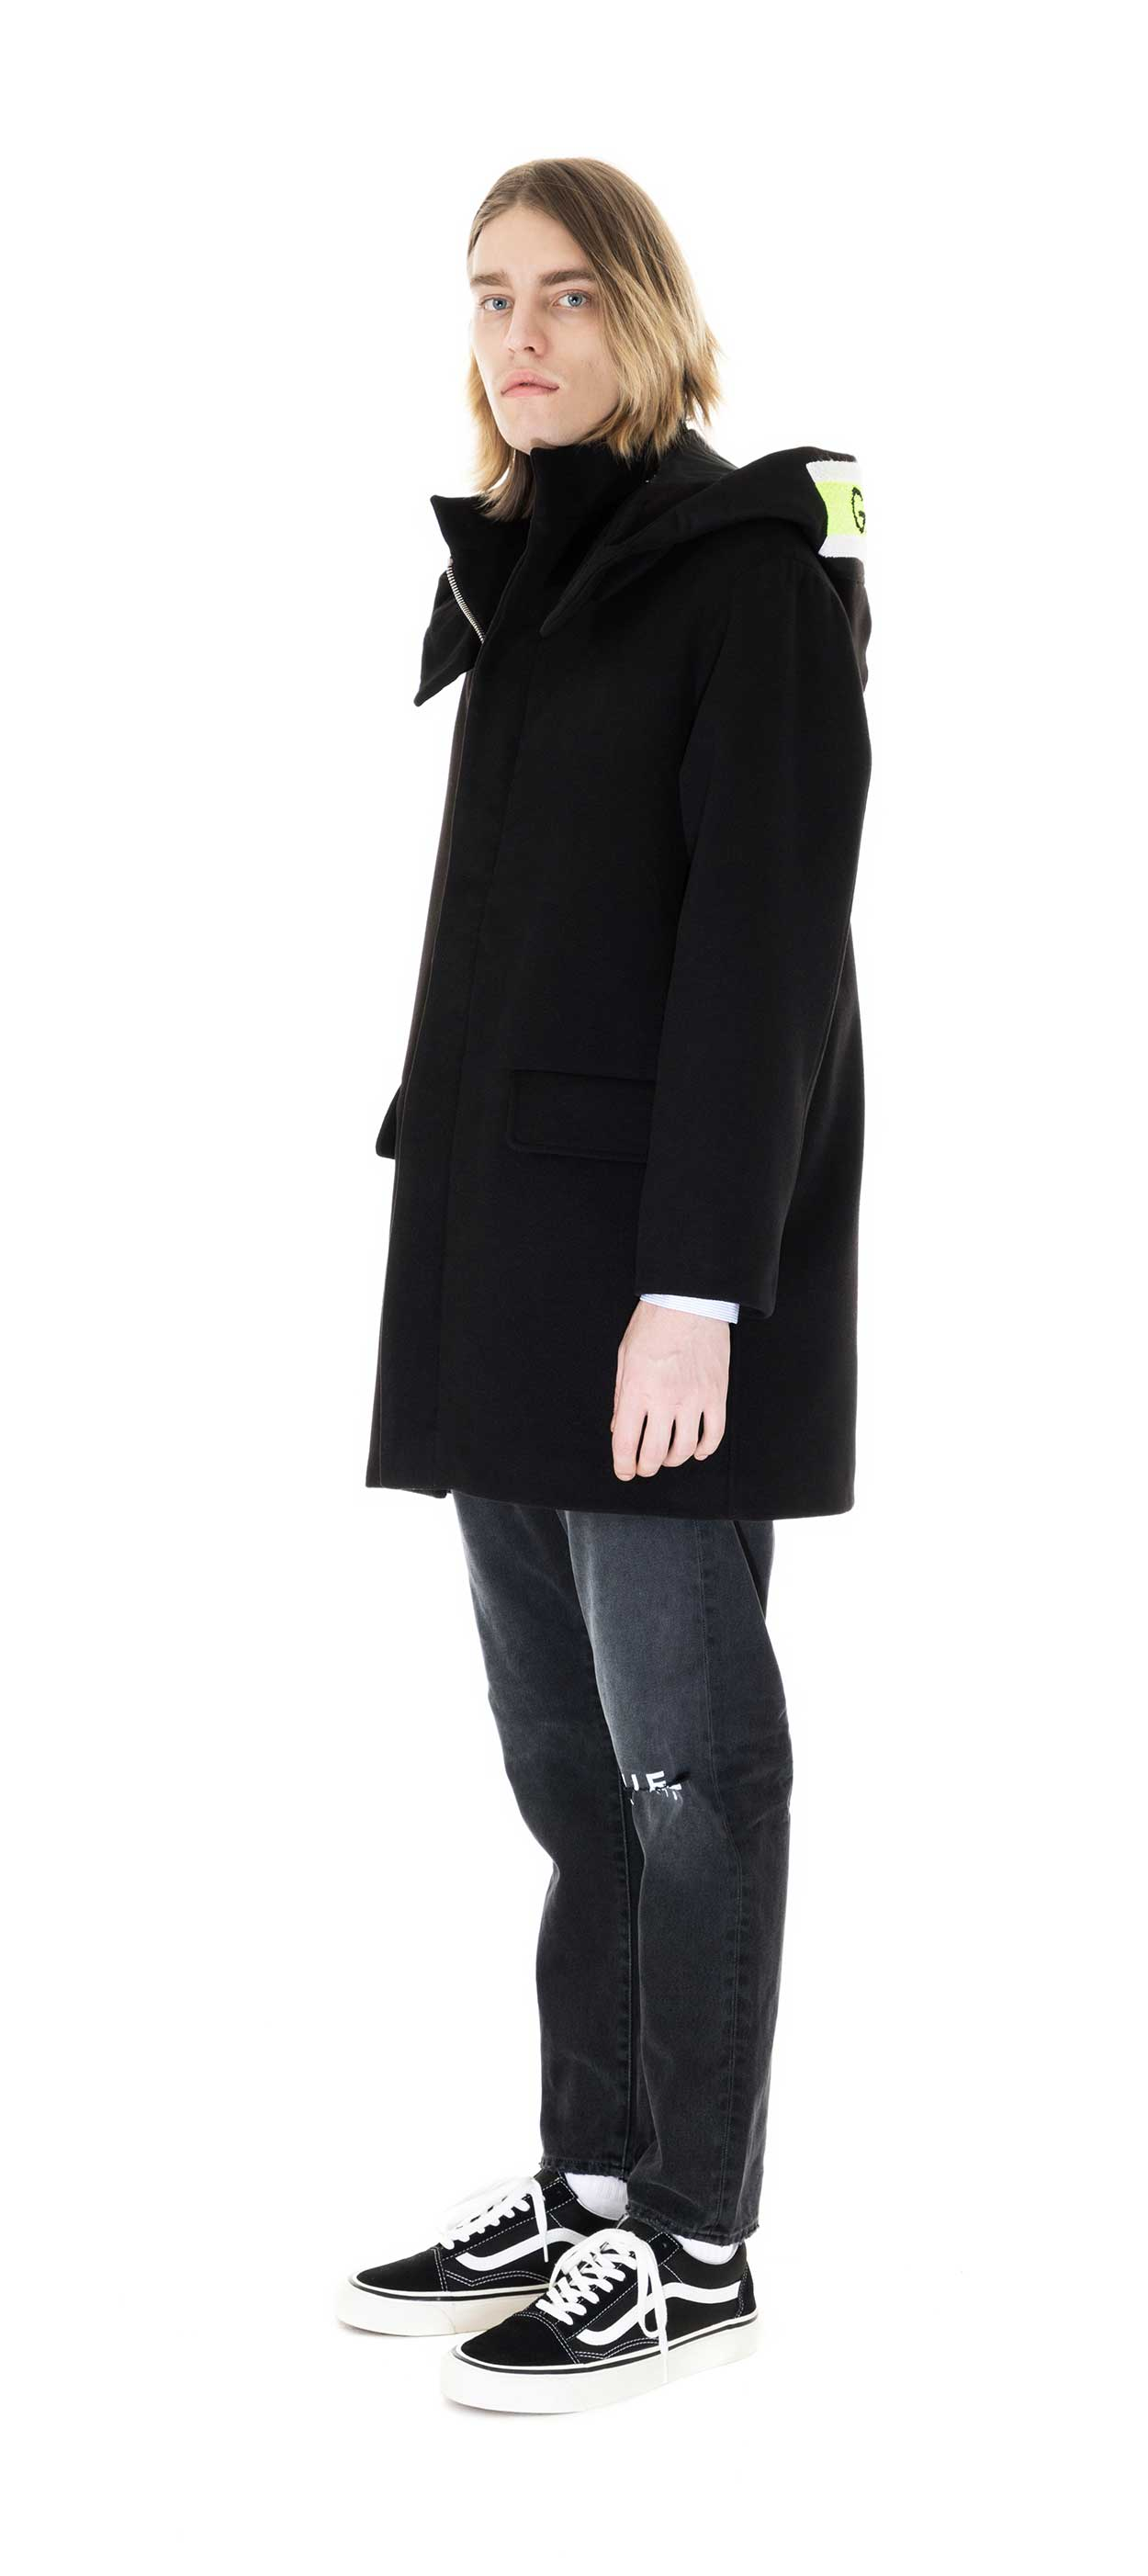 CAPPOTTO - GBU2204 - GAELLE PARIS